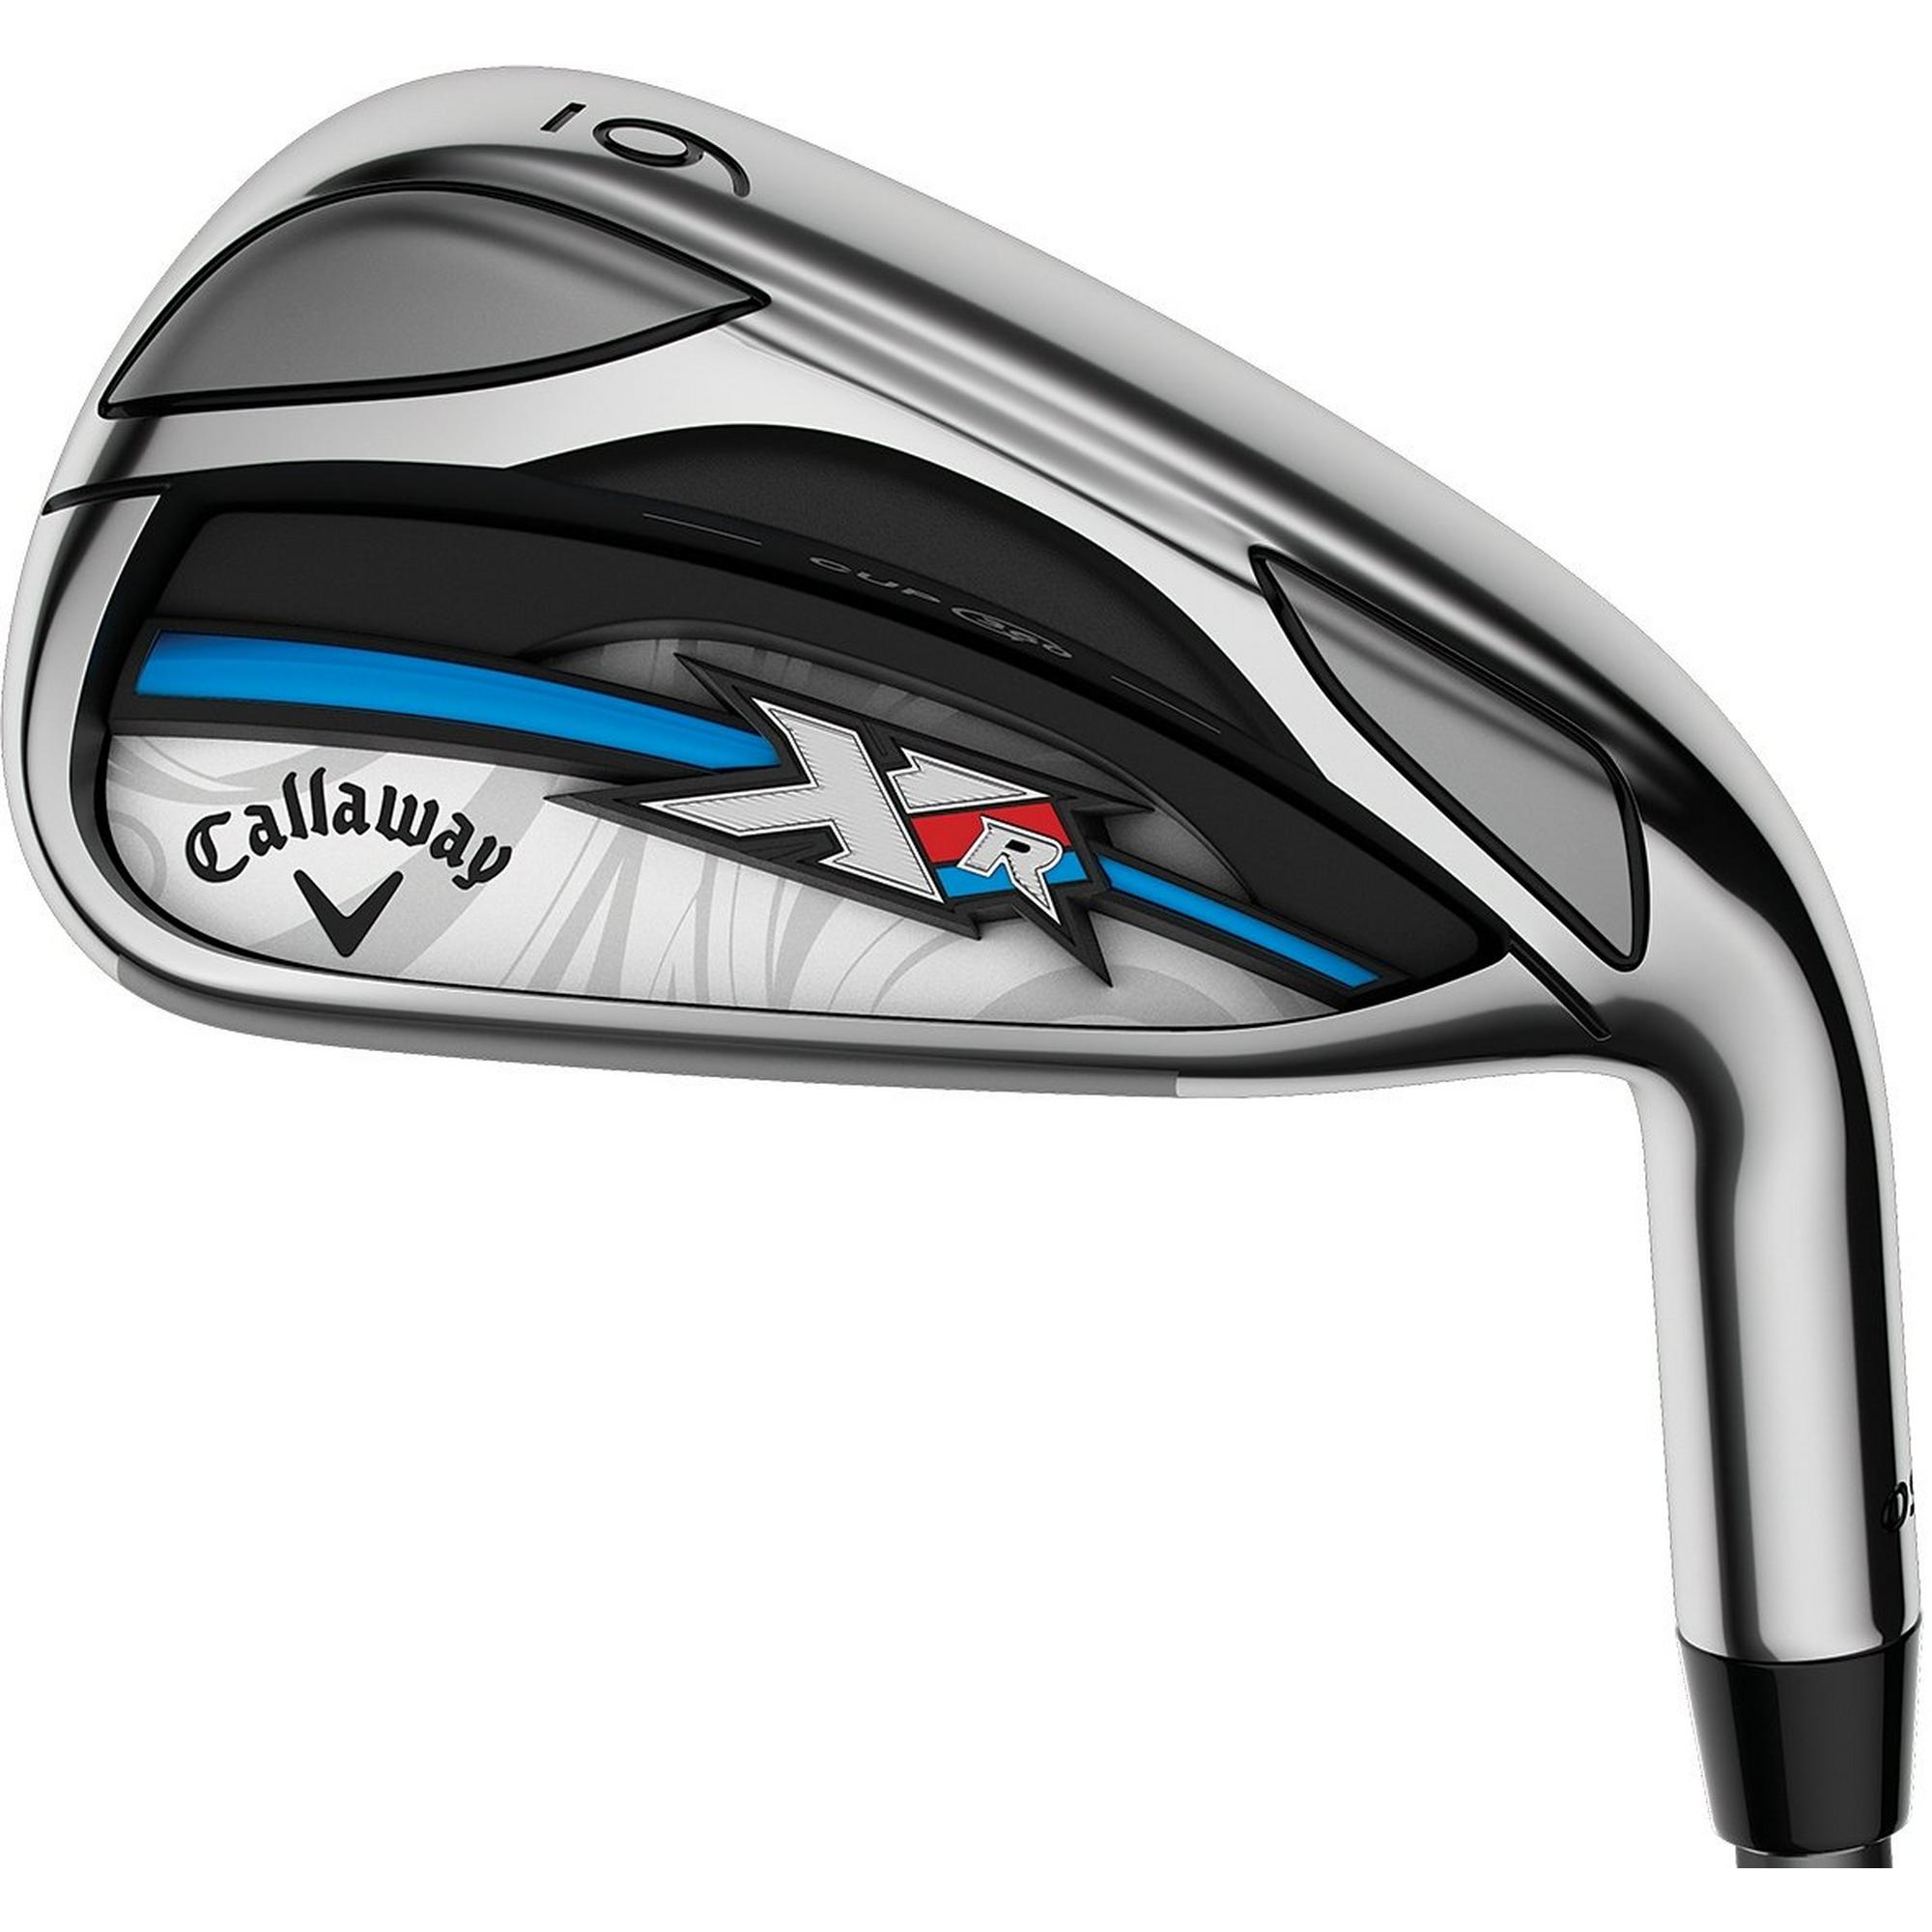 Women's XR OS 5-PW, AW Iron Set with Graphite Shafts